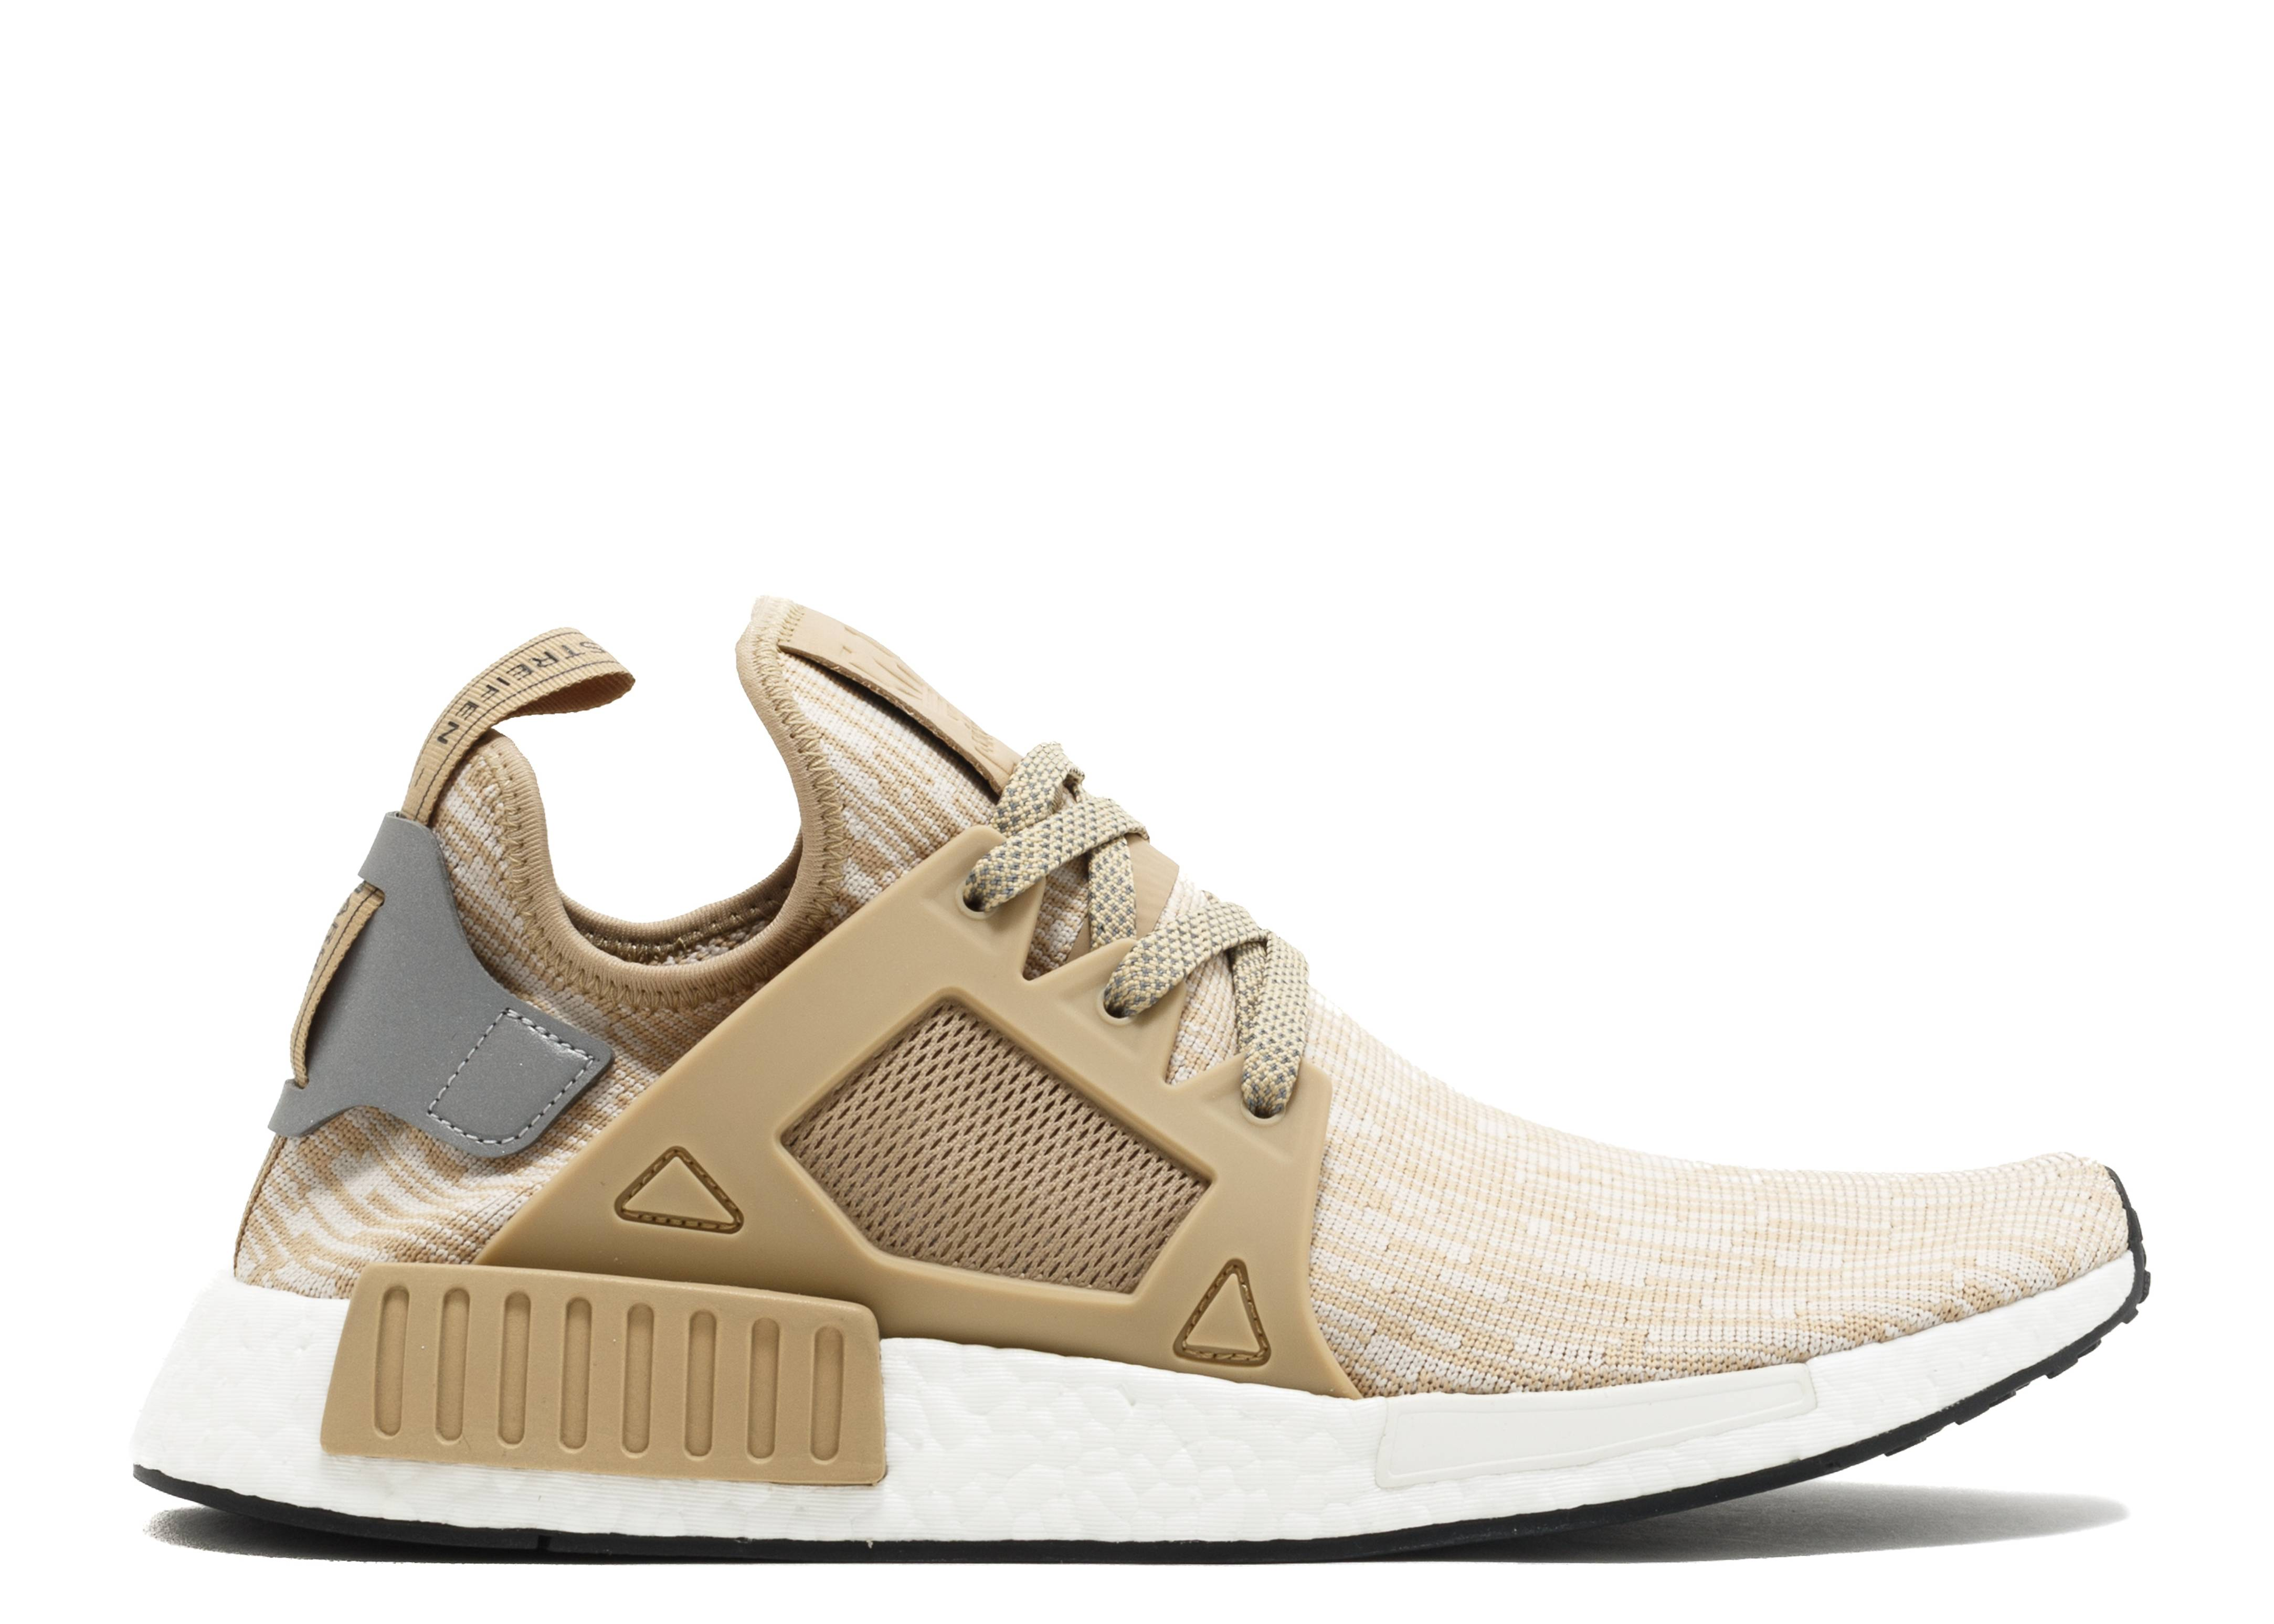 adidas Gives the NMD XR1 New